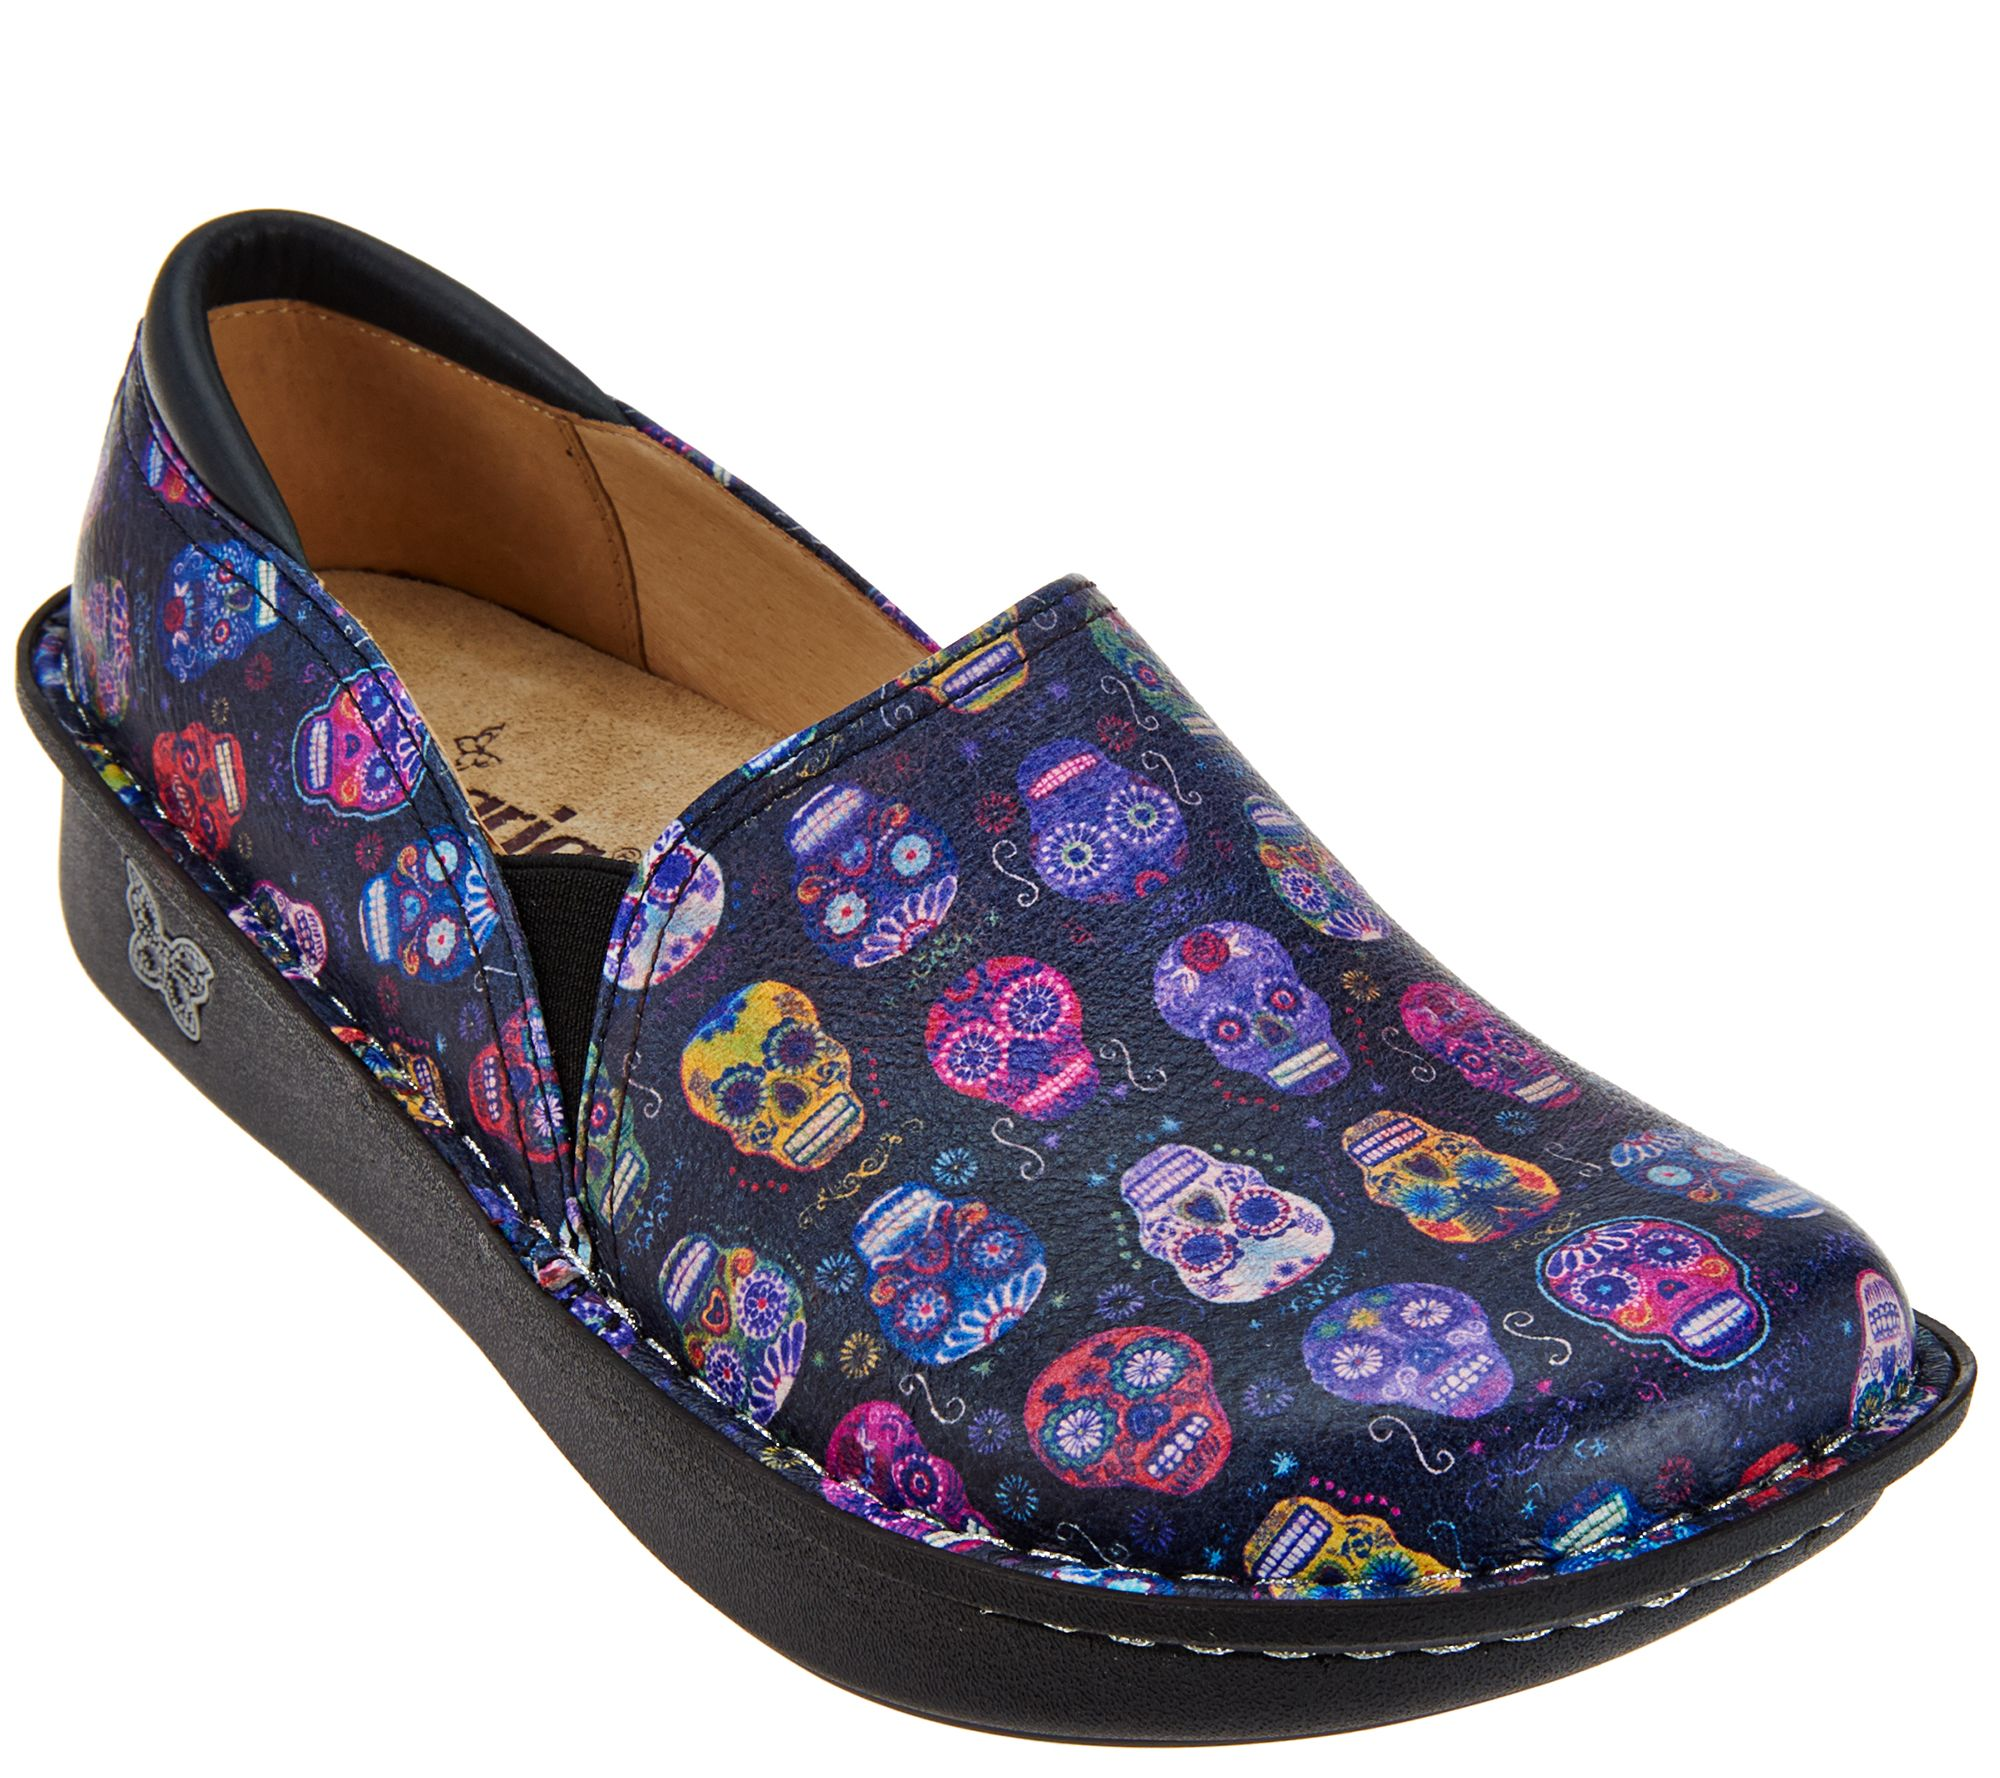 Home Accents Christmas Decorations Alegria Leather Printed Slip On Shoes Debra Pro Page 1